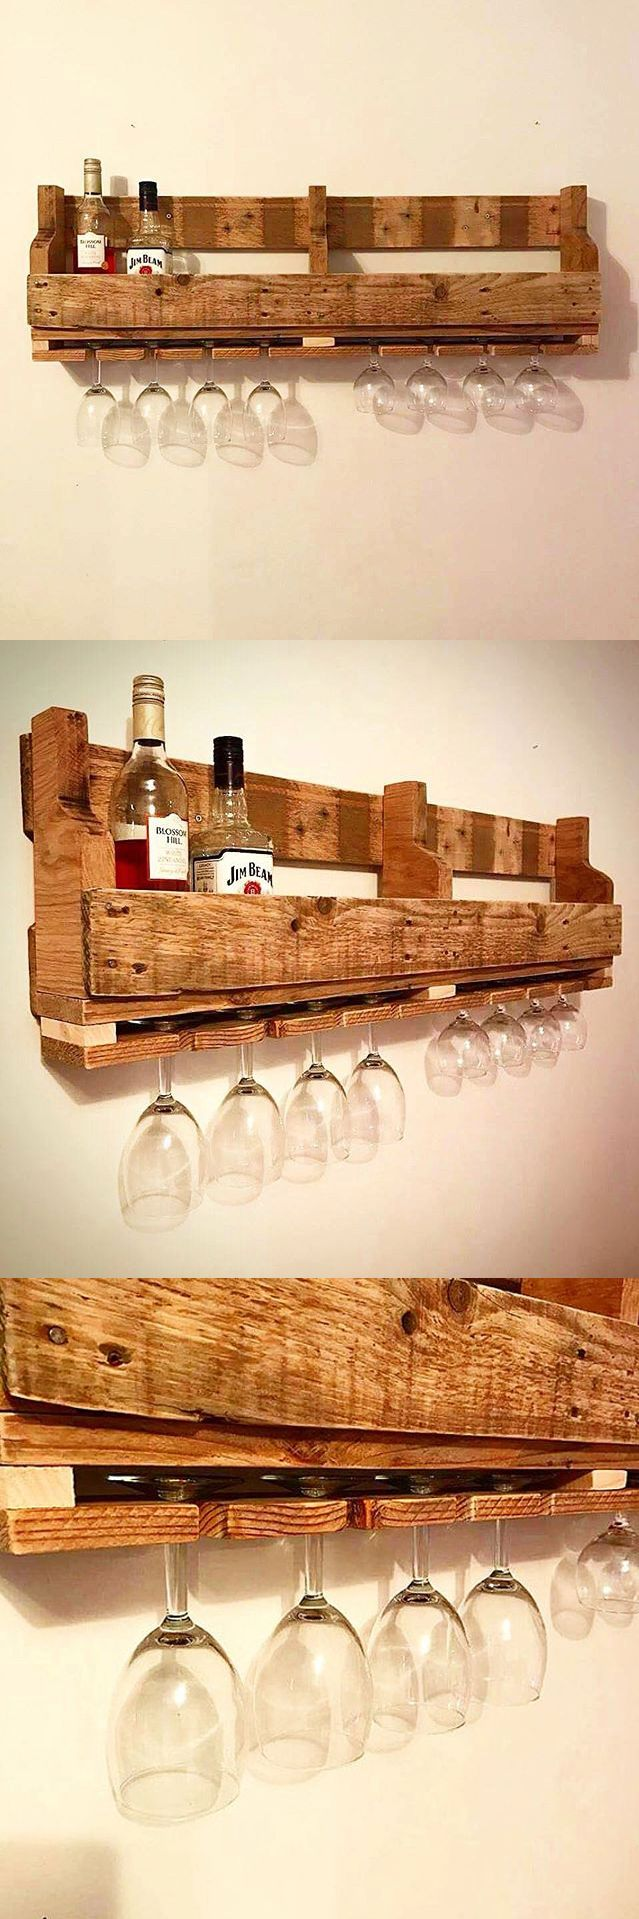 El caliente bar by sweet co tokyo 187 retail design blog - Reclaimed Wood Wine Rack Can Custom Make For Your Home Bar Or Cellar Dining